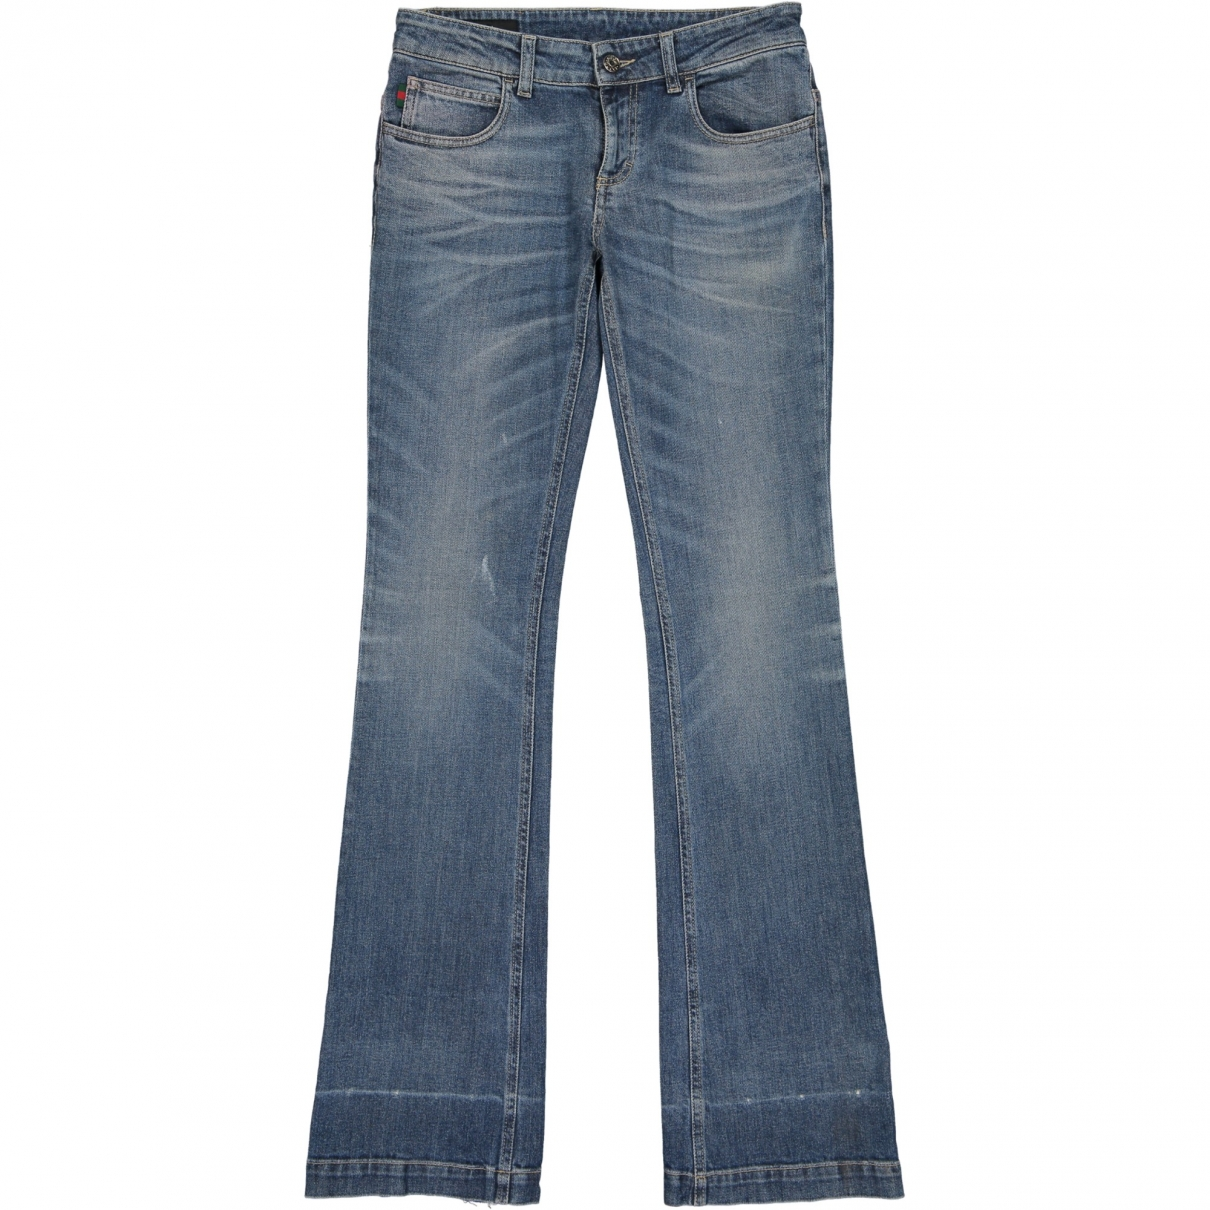 Gucci \N Blue Cotton - elasthane Jeans for Women 26 US